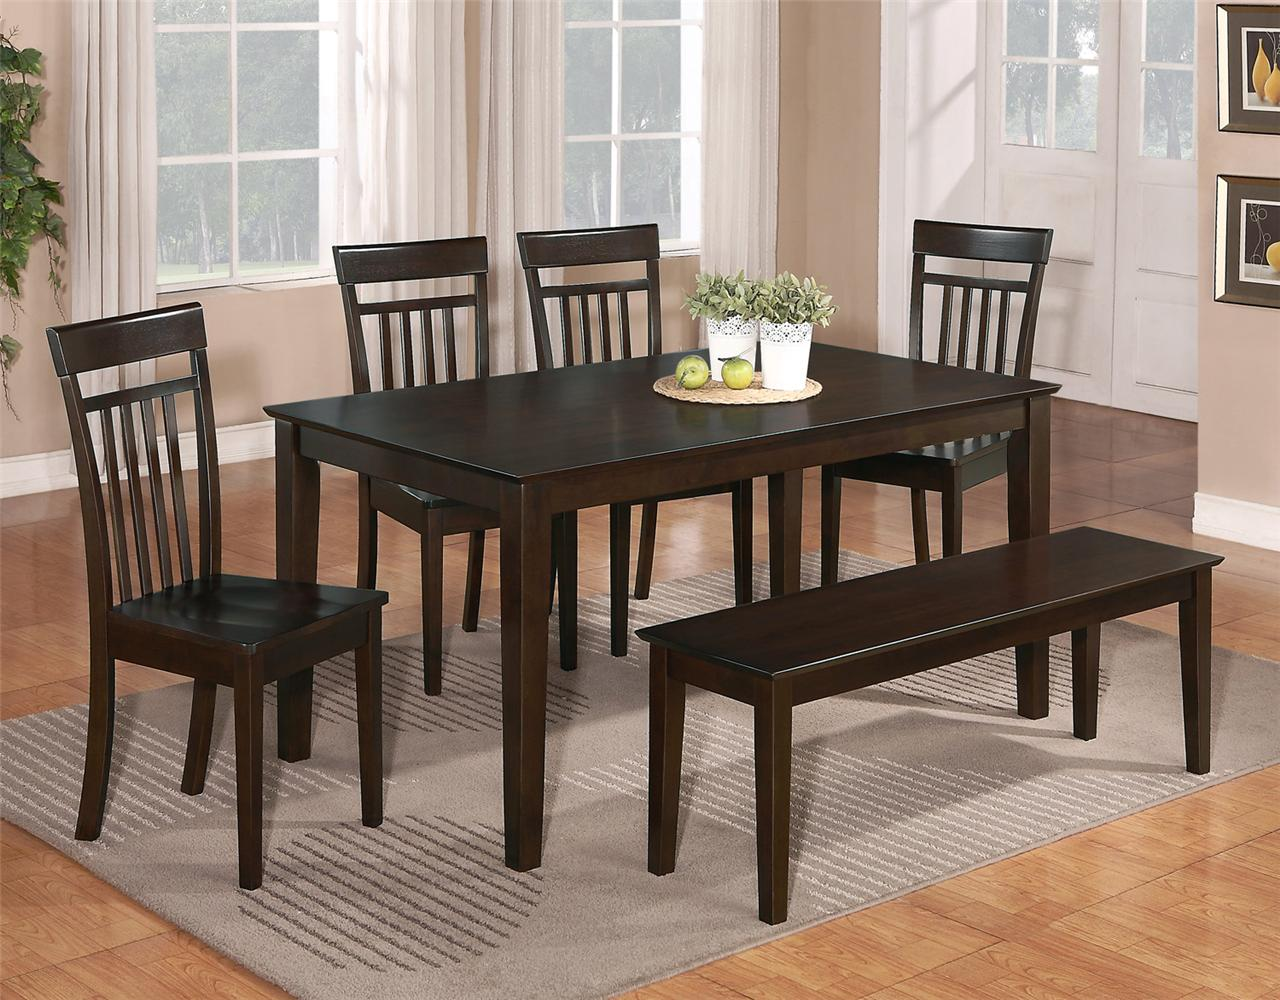 6 pc dinette kitchen dining room set table w 4 wood chair for Kitchen dining sets